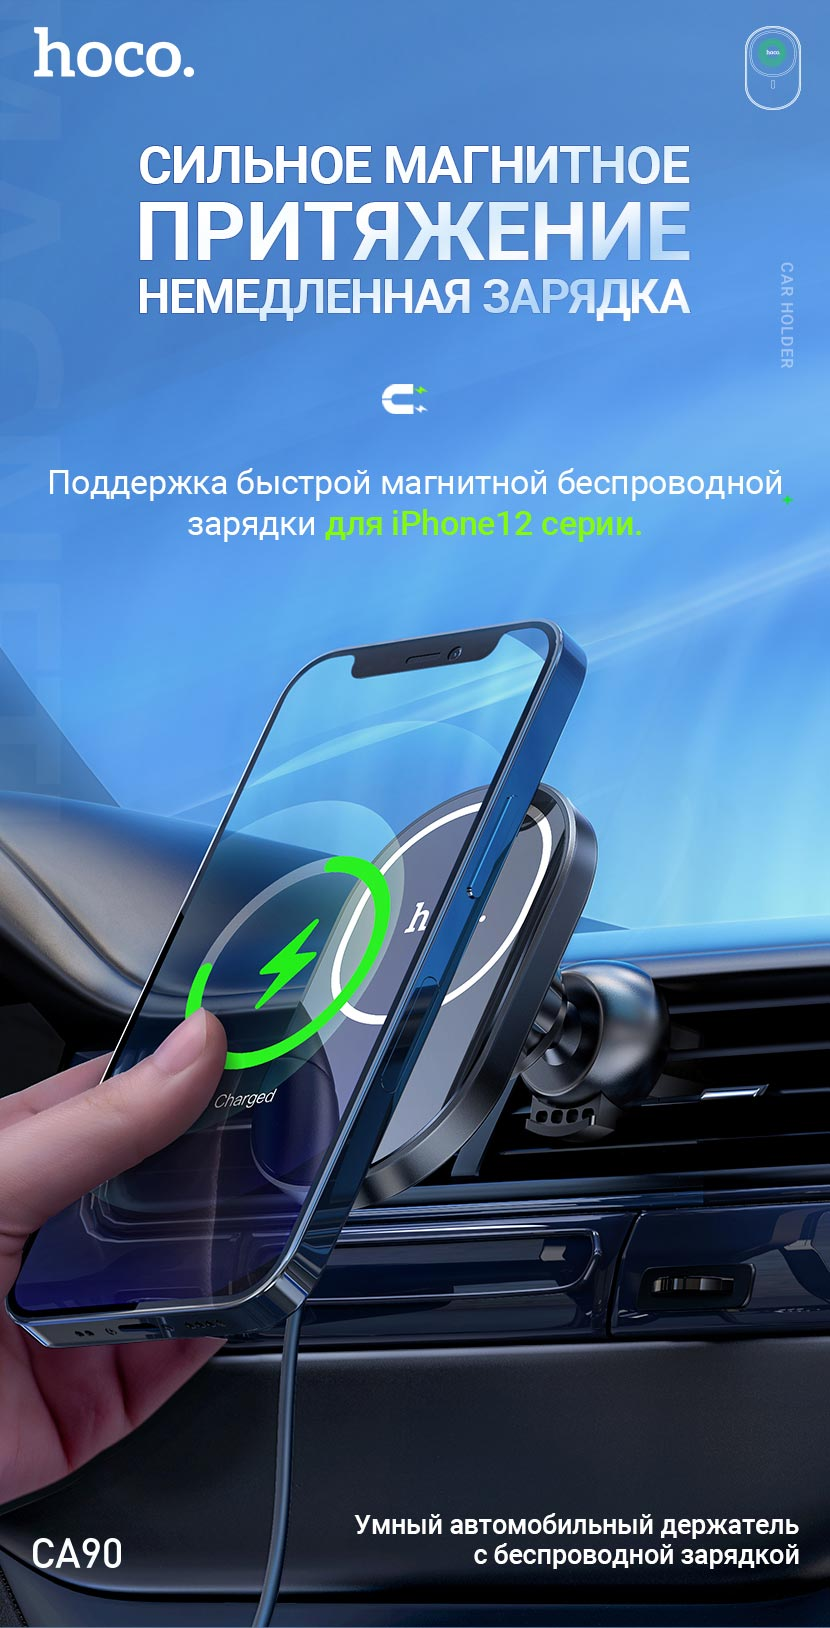 hoco news ca90 powerful magnetic car holder with wireless charging ru